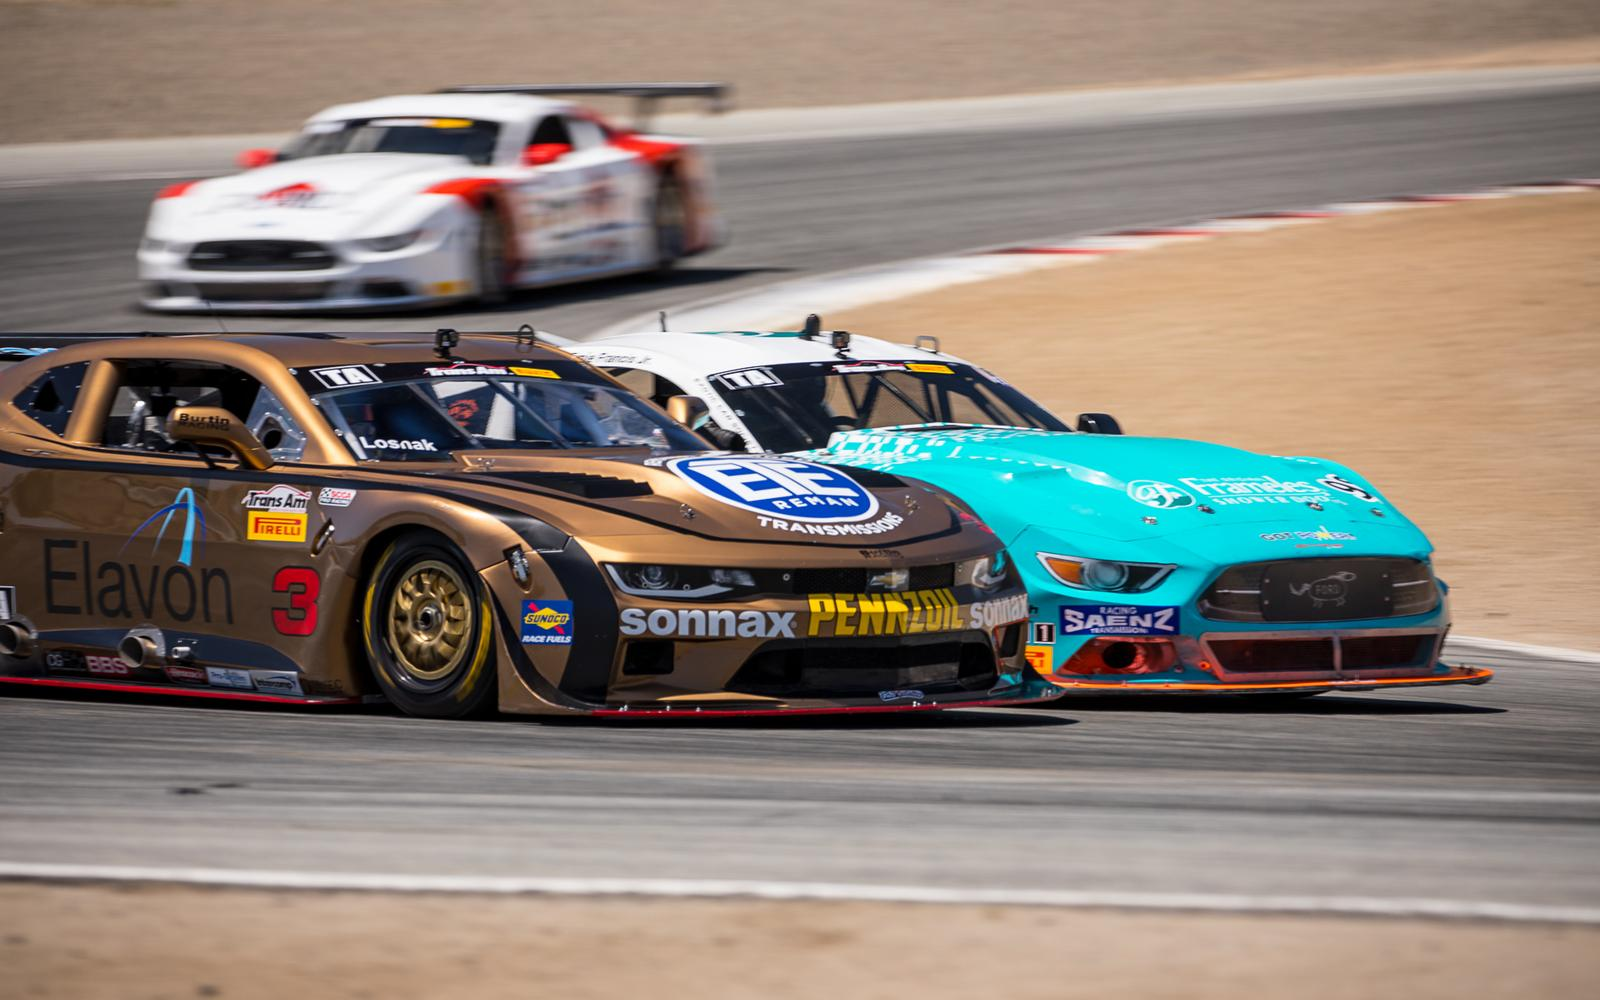 Double Podium For Burtin Racing at Laguna Seca Sets Up Season Championship Battle